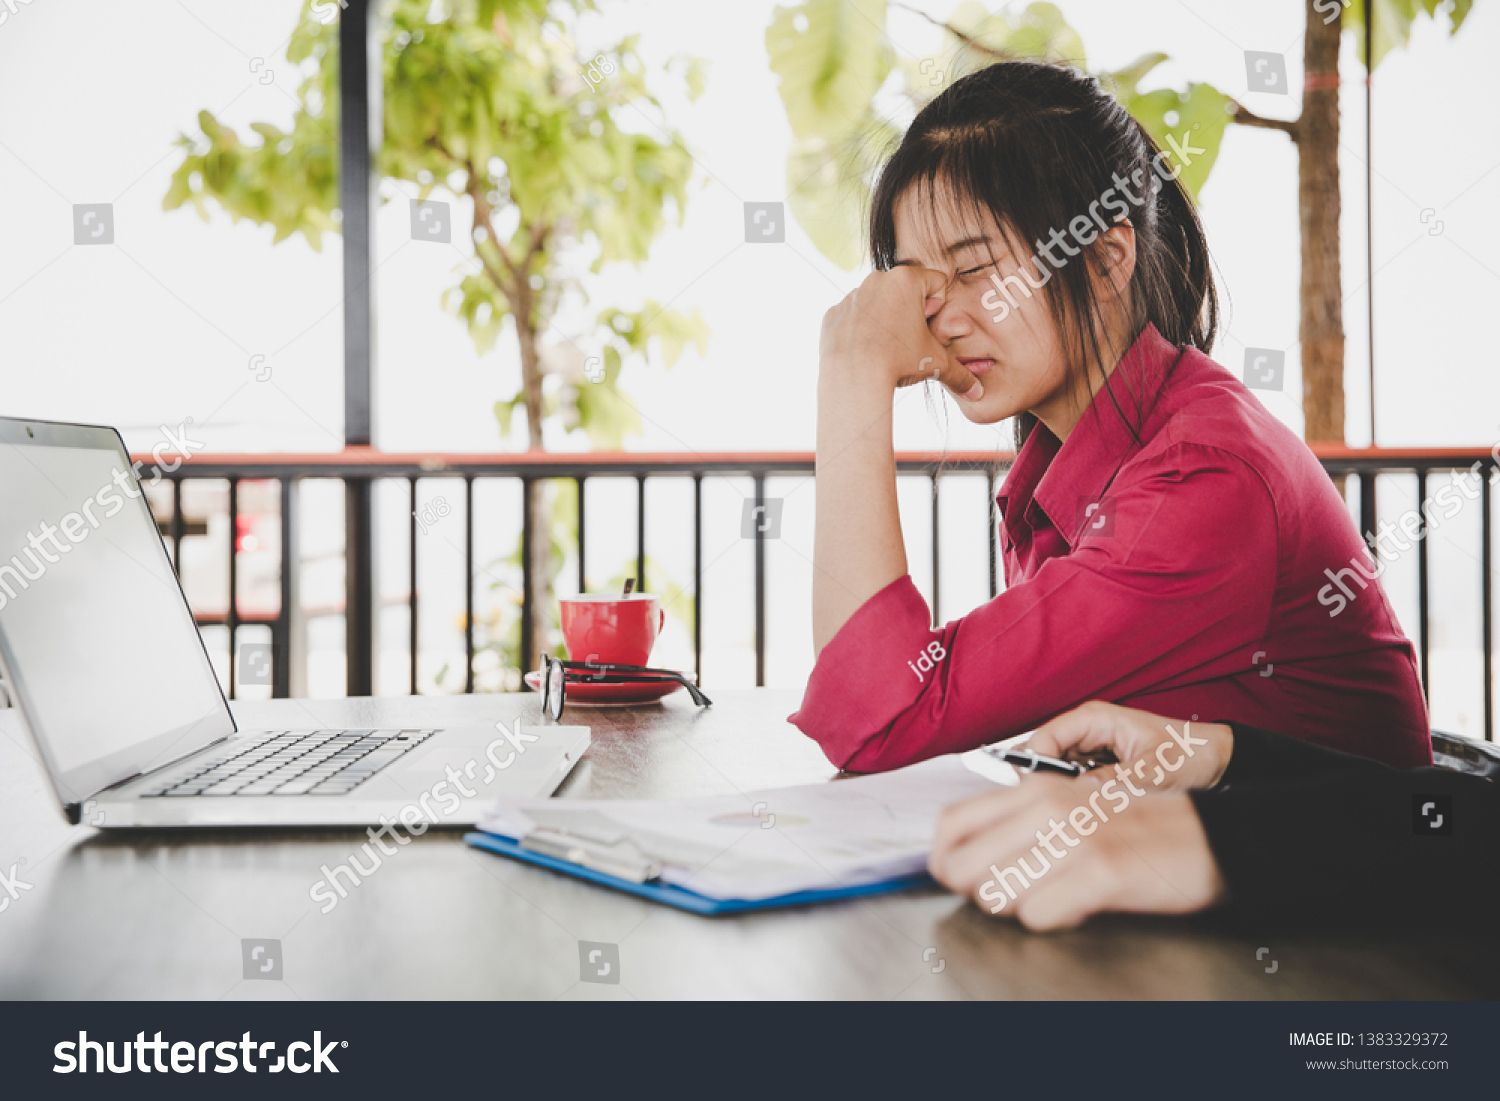 Tired frustrated business people feeling stressed business problem failure or company bankruptcy concept